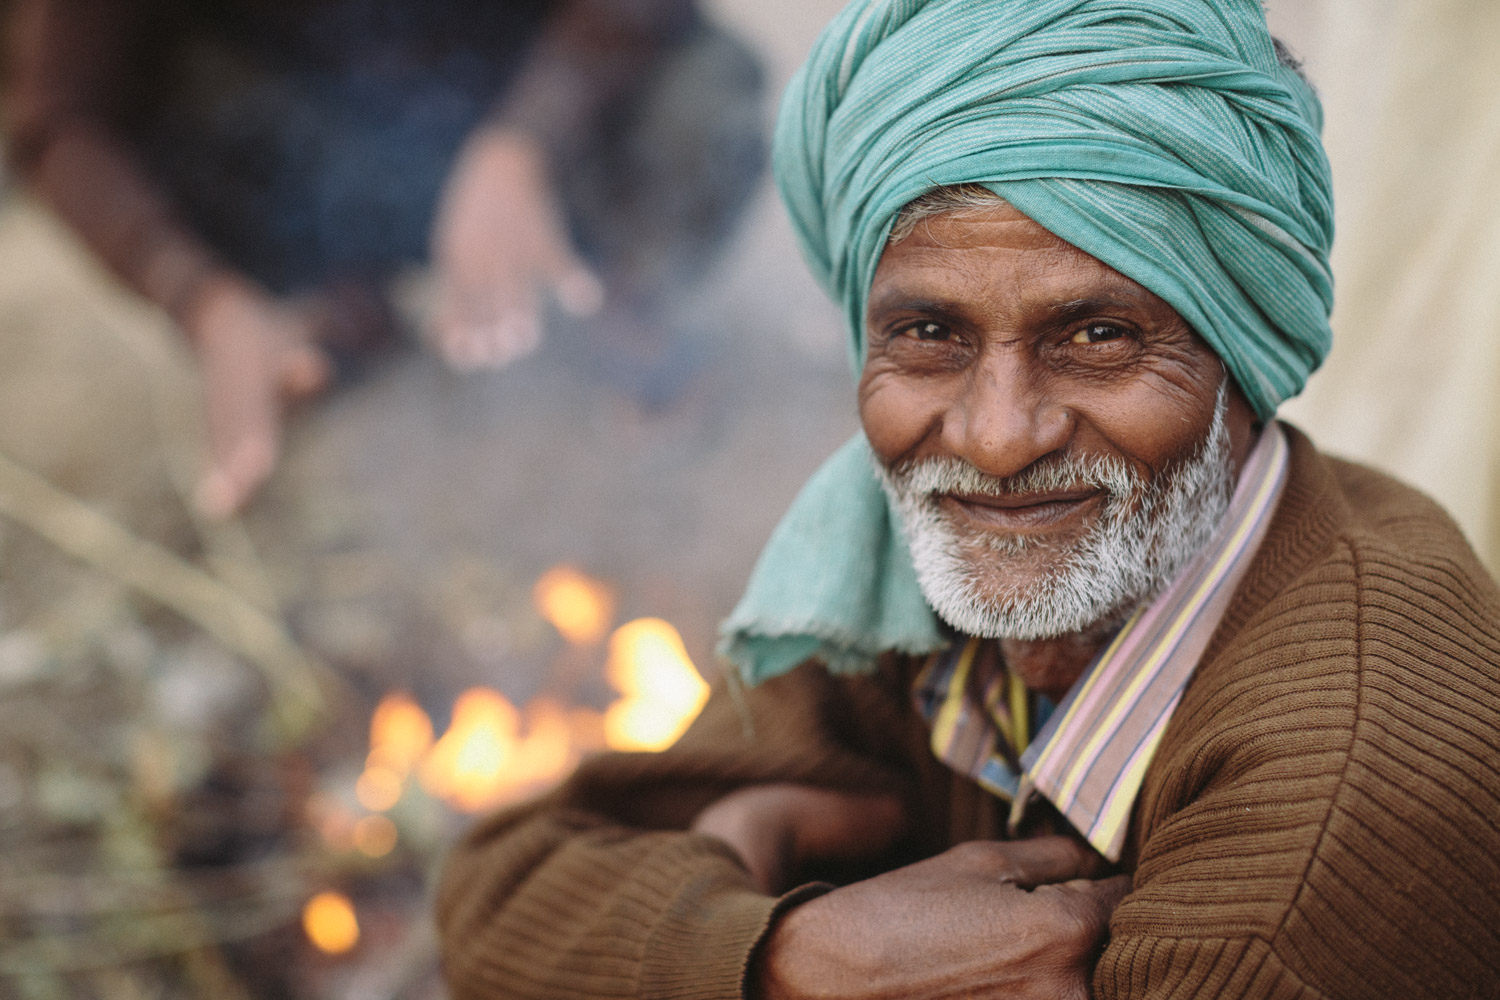 A man sits by a morning fire in Agra, Uttar Pradesh, India